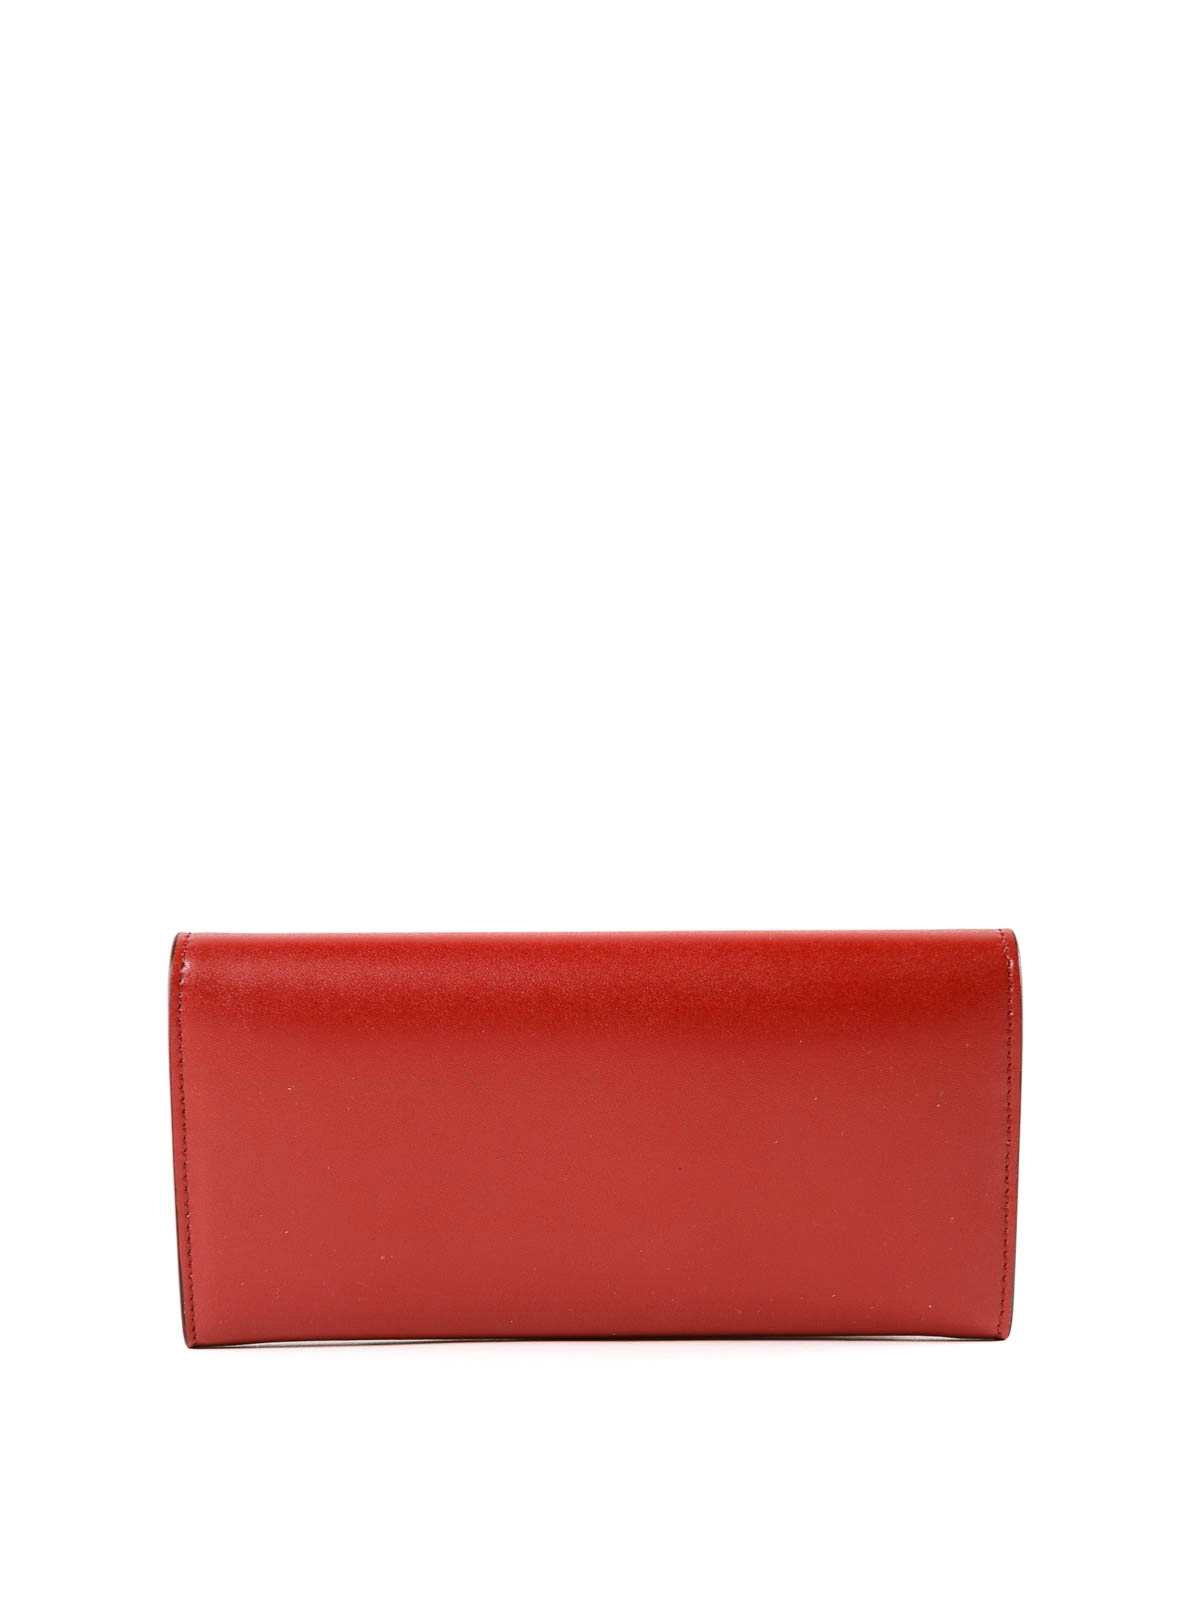 f233a356c0 iKRIX FENDI: wallets & purses - Crayons red leather continental wallet